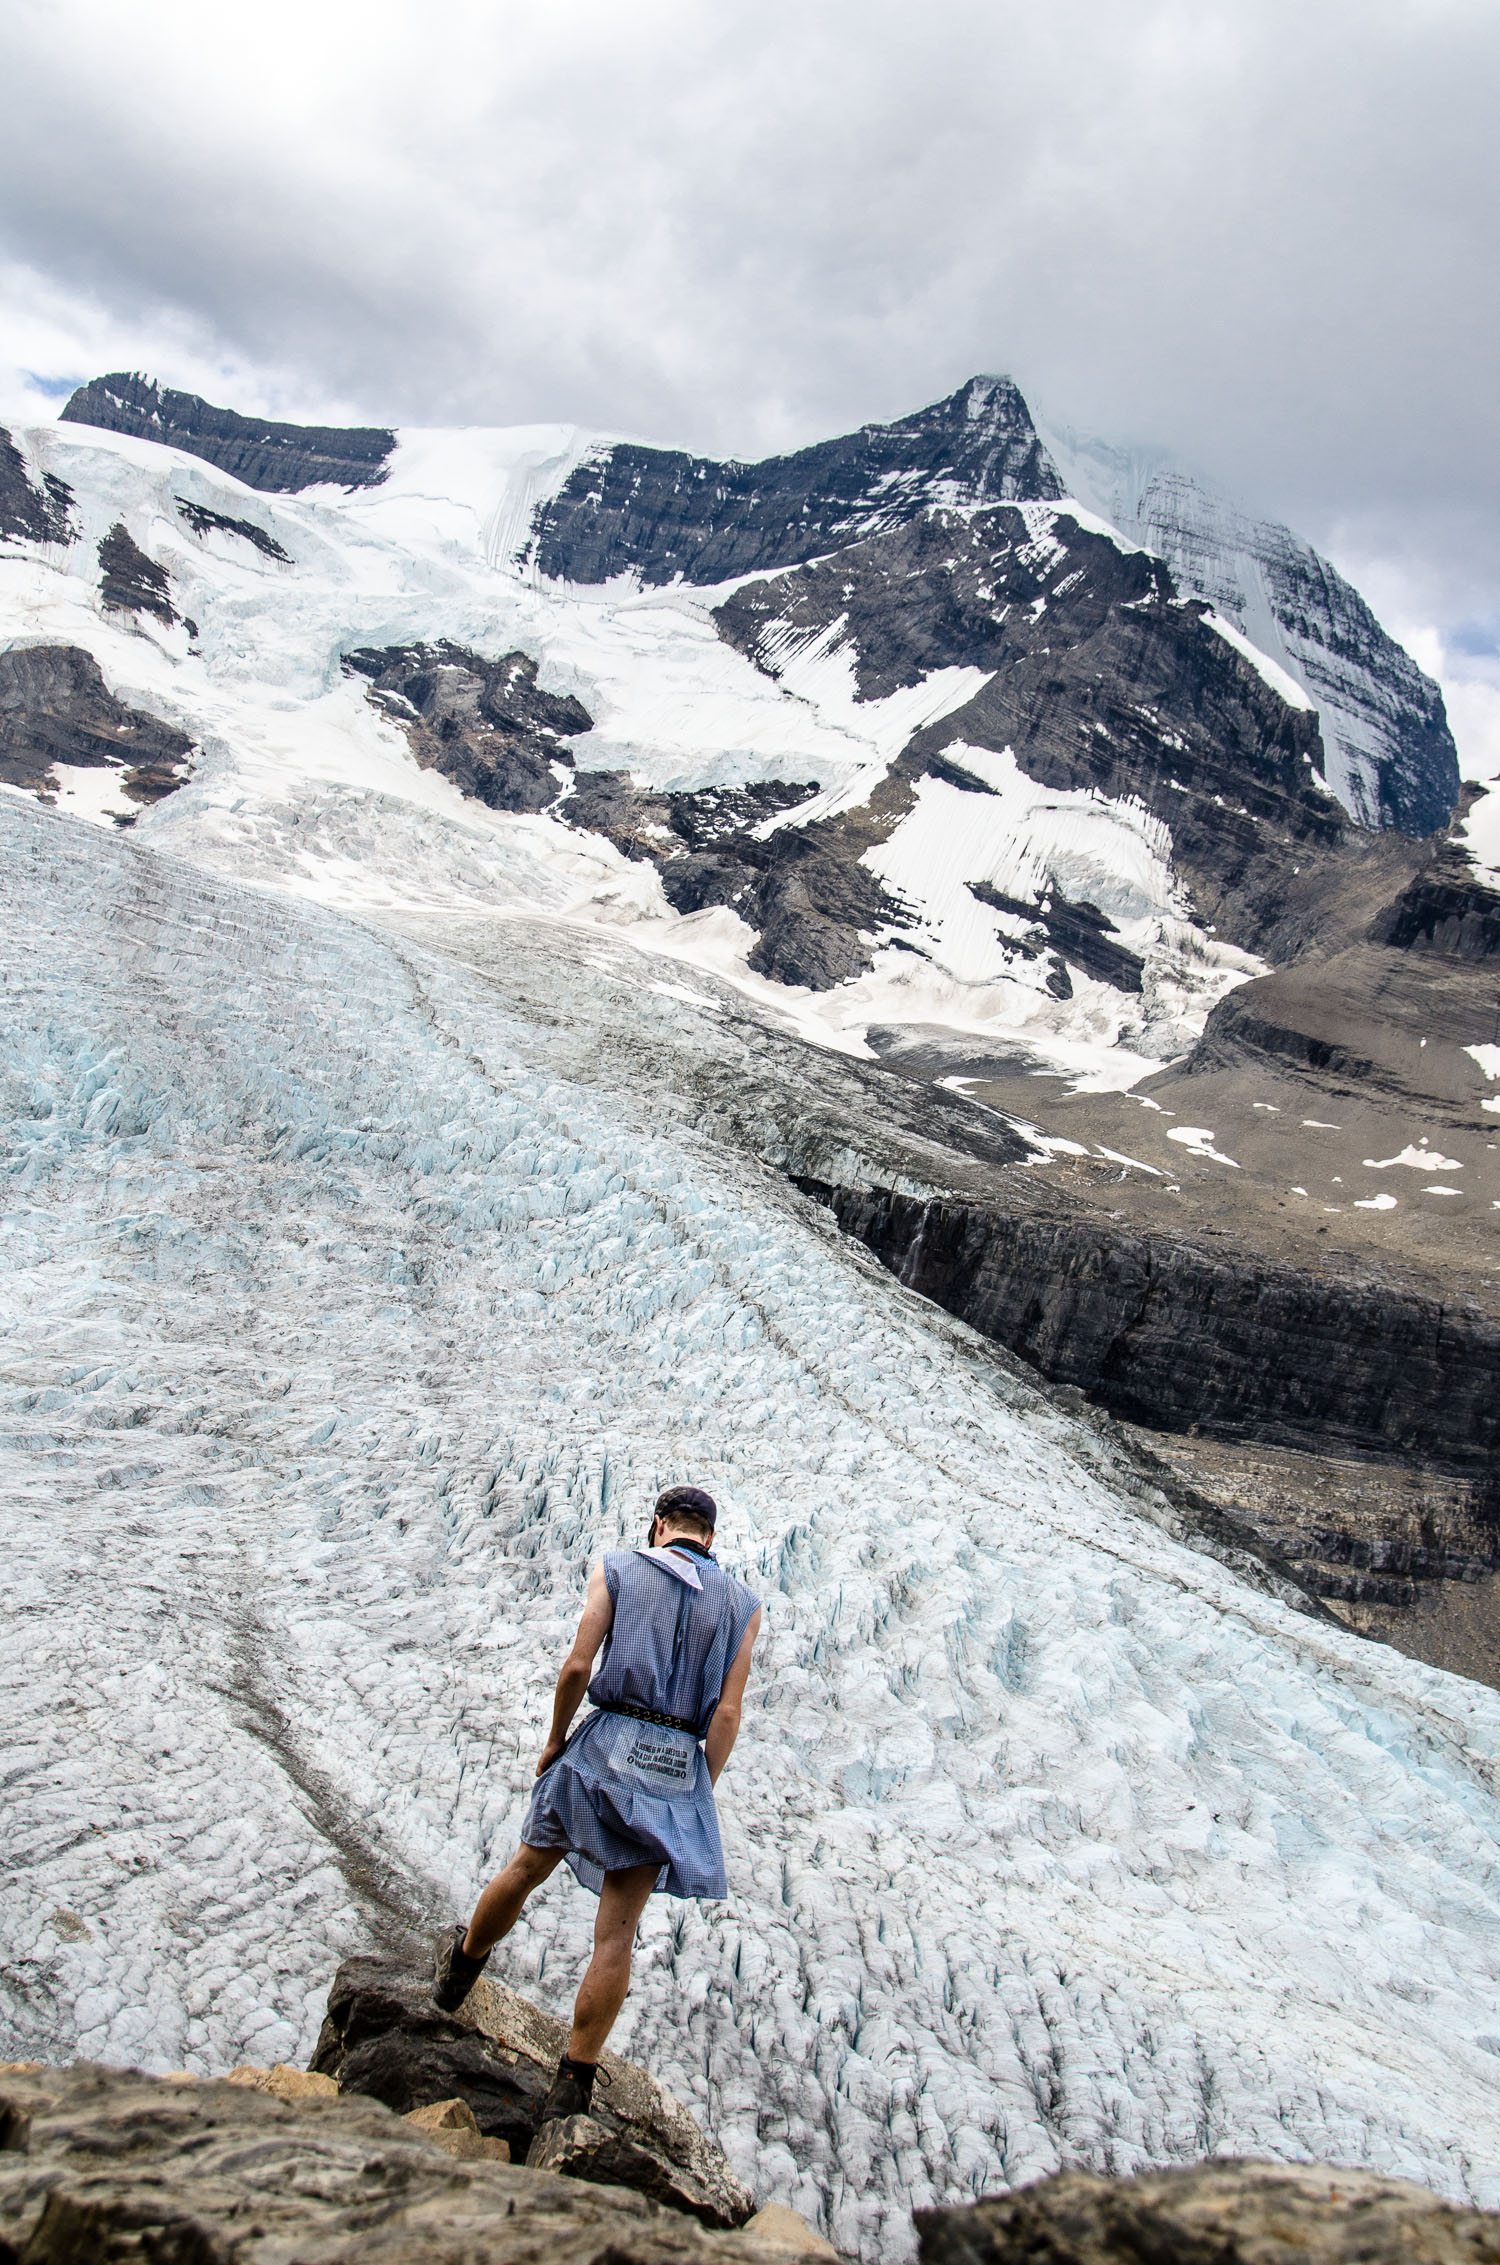 Looking out over the massive Robson Glacier, with Mr Robson (the highest mountain in the Canadian Rockies) in the back.  © Dustin Main 2012